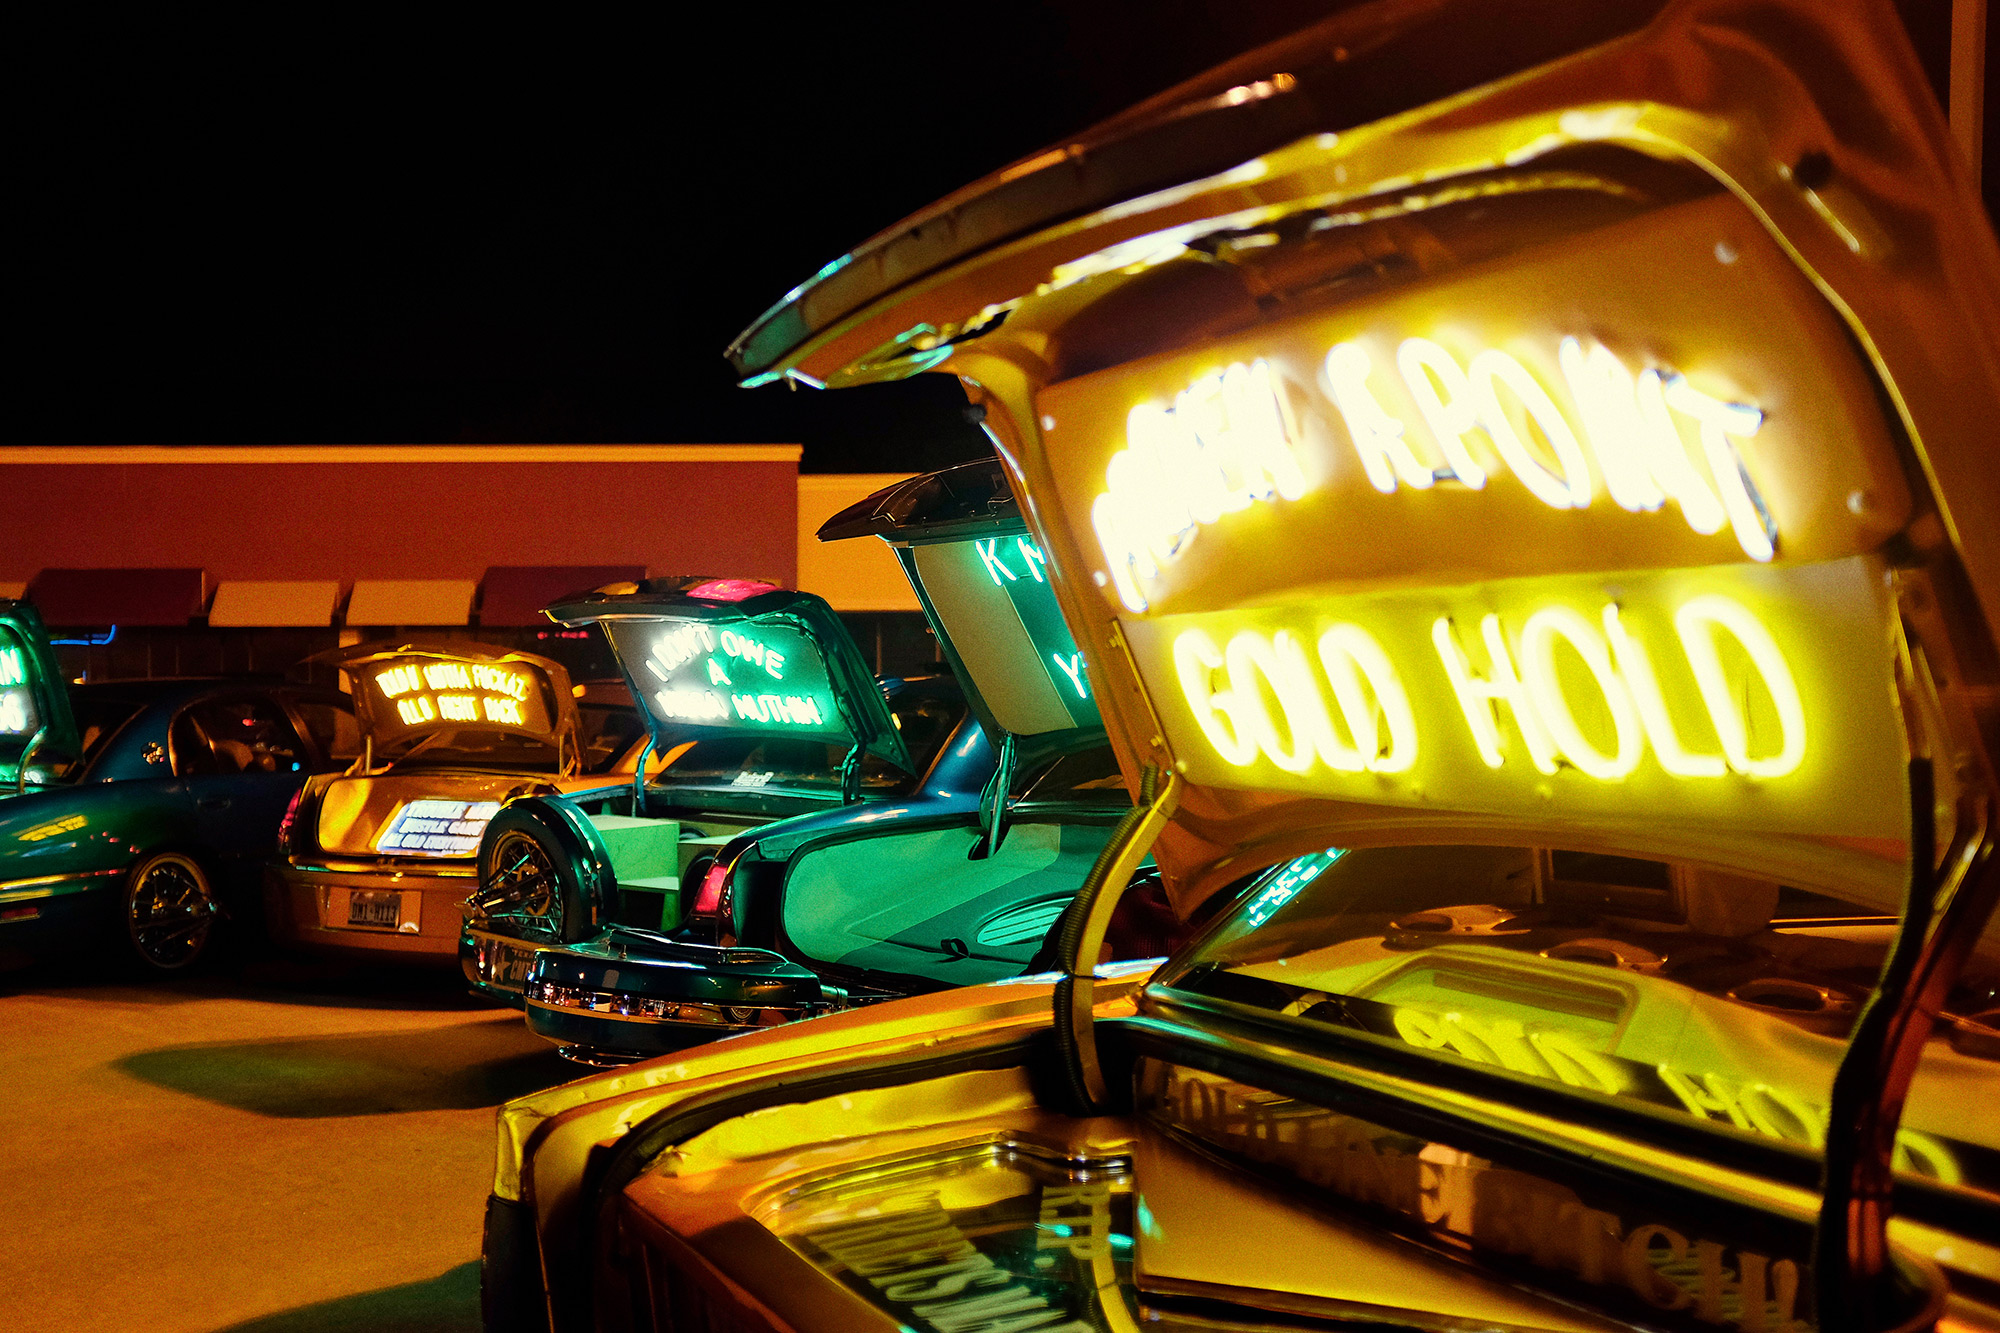 Slabs outfitted with neon signs and messages parked outside of Southside Smoke Shop in Houston, Texas during a music video featuring Bun B, Paul Wall and Trae tha Truth, photographed by Houston editorial and commercial photographer, Todd Spoth.